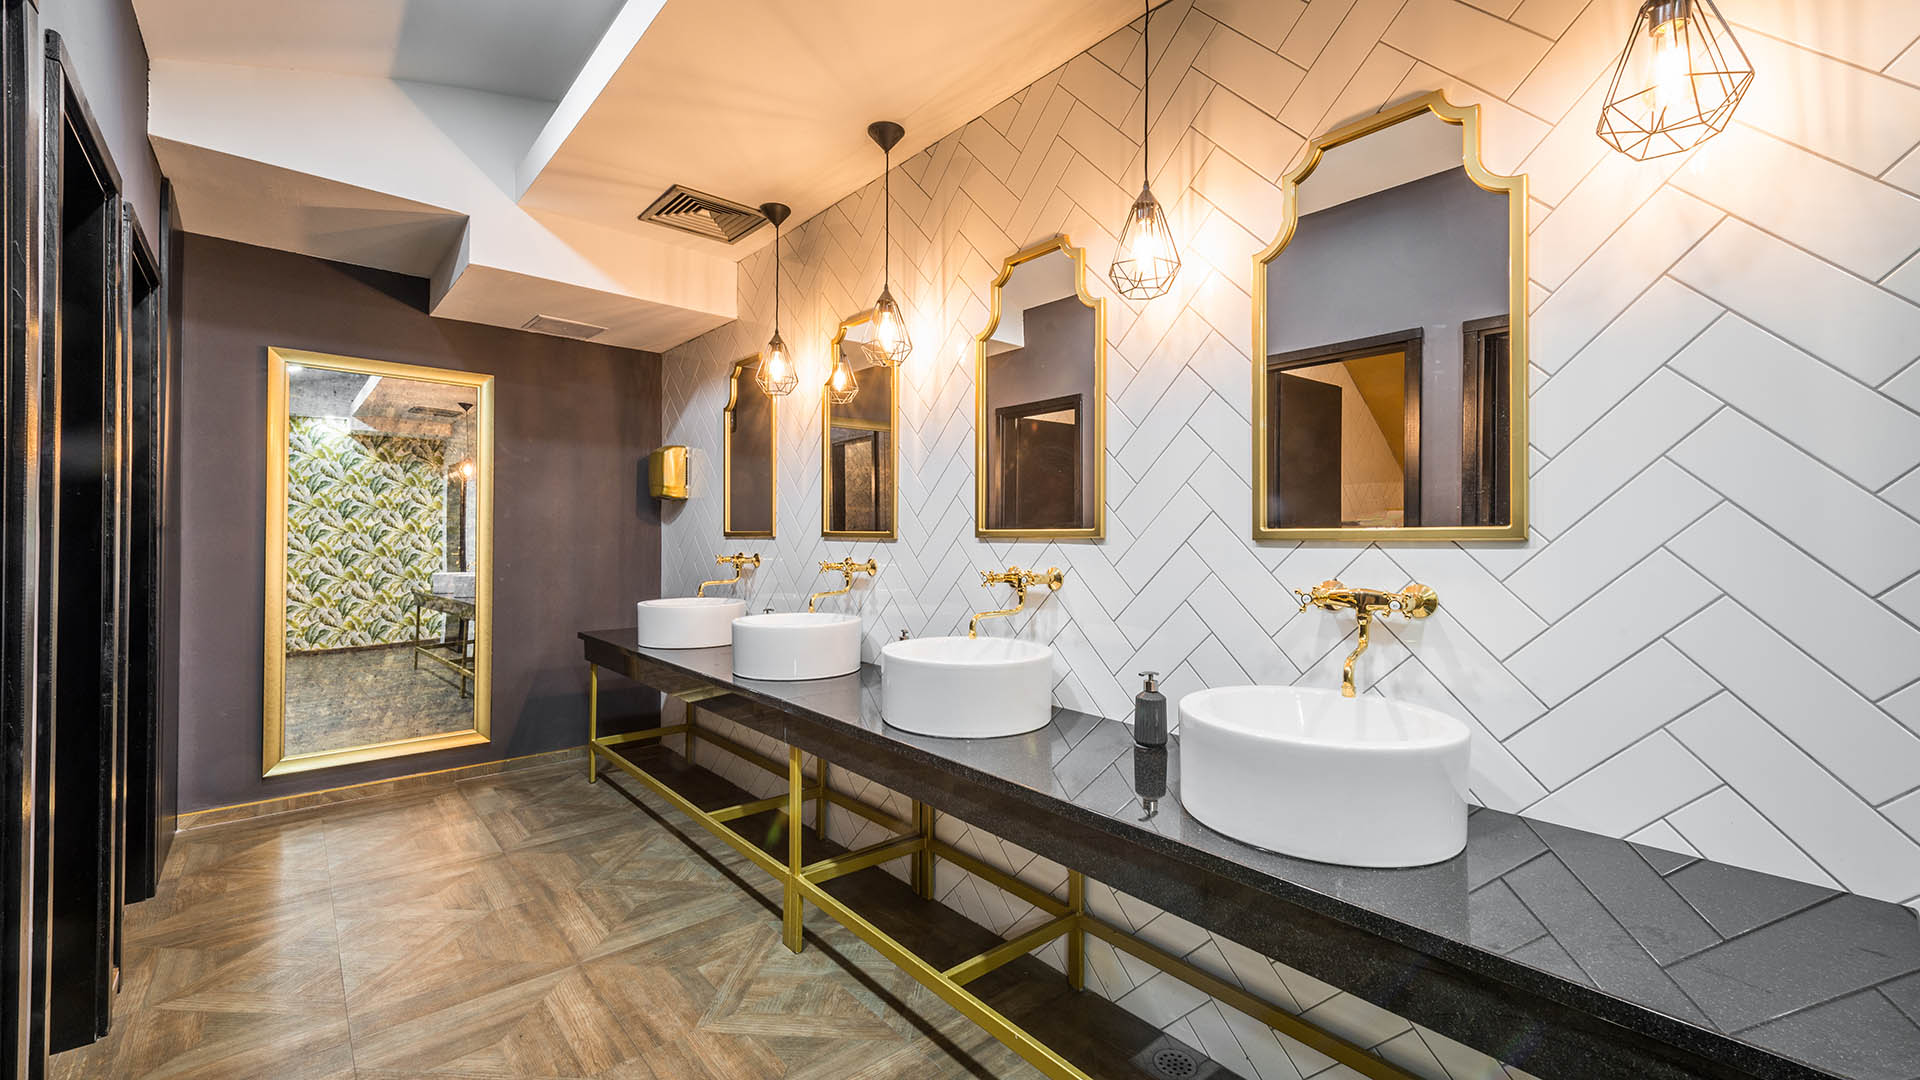 A stunning Commercial Bathroom Renovation with a classy and luxurious design by Renovahouse in Willoughby Sydney